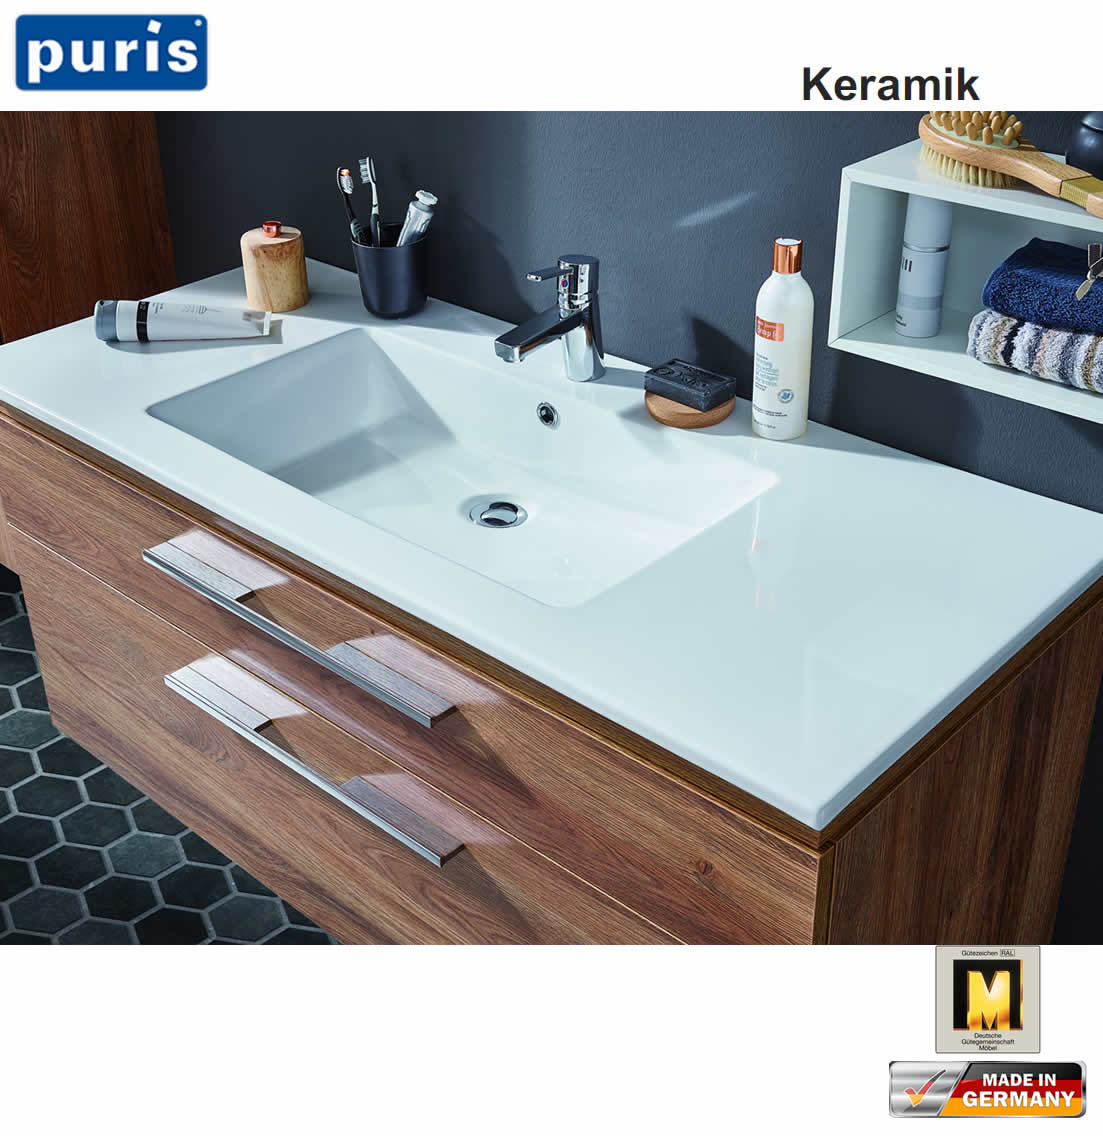 puris cool line waschtisch set 120 cm keramik led optional impuls home. Black Bedroom Furniture Sets. Home Design Ideas